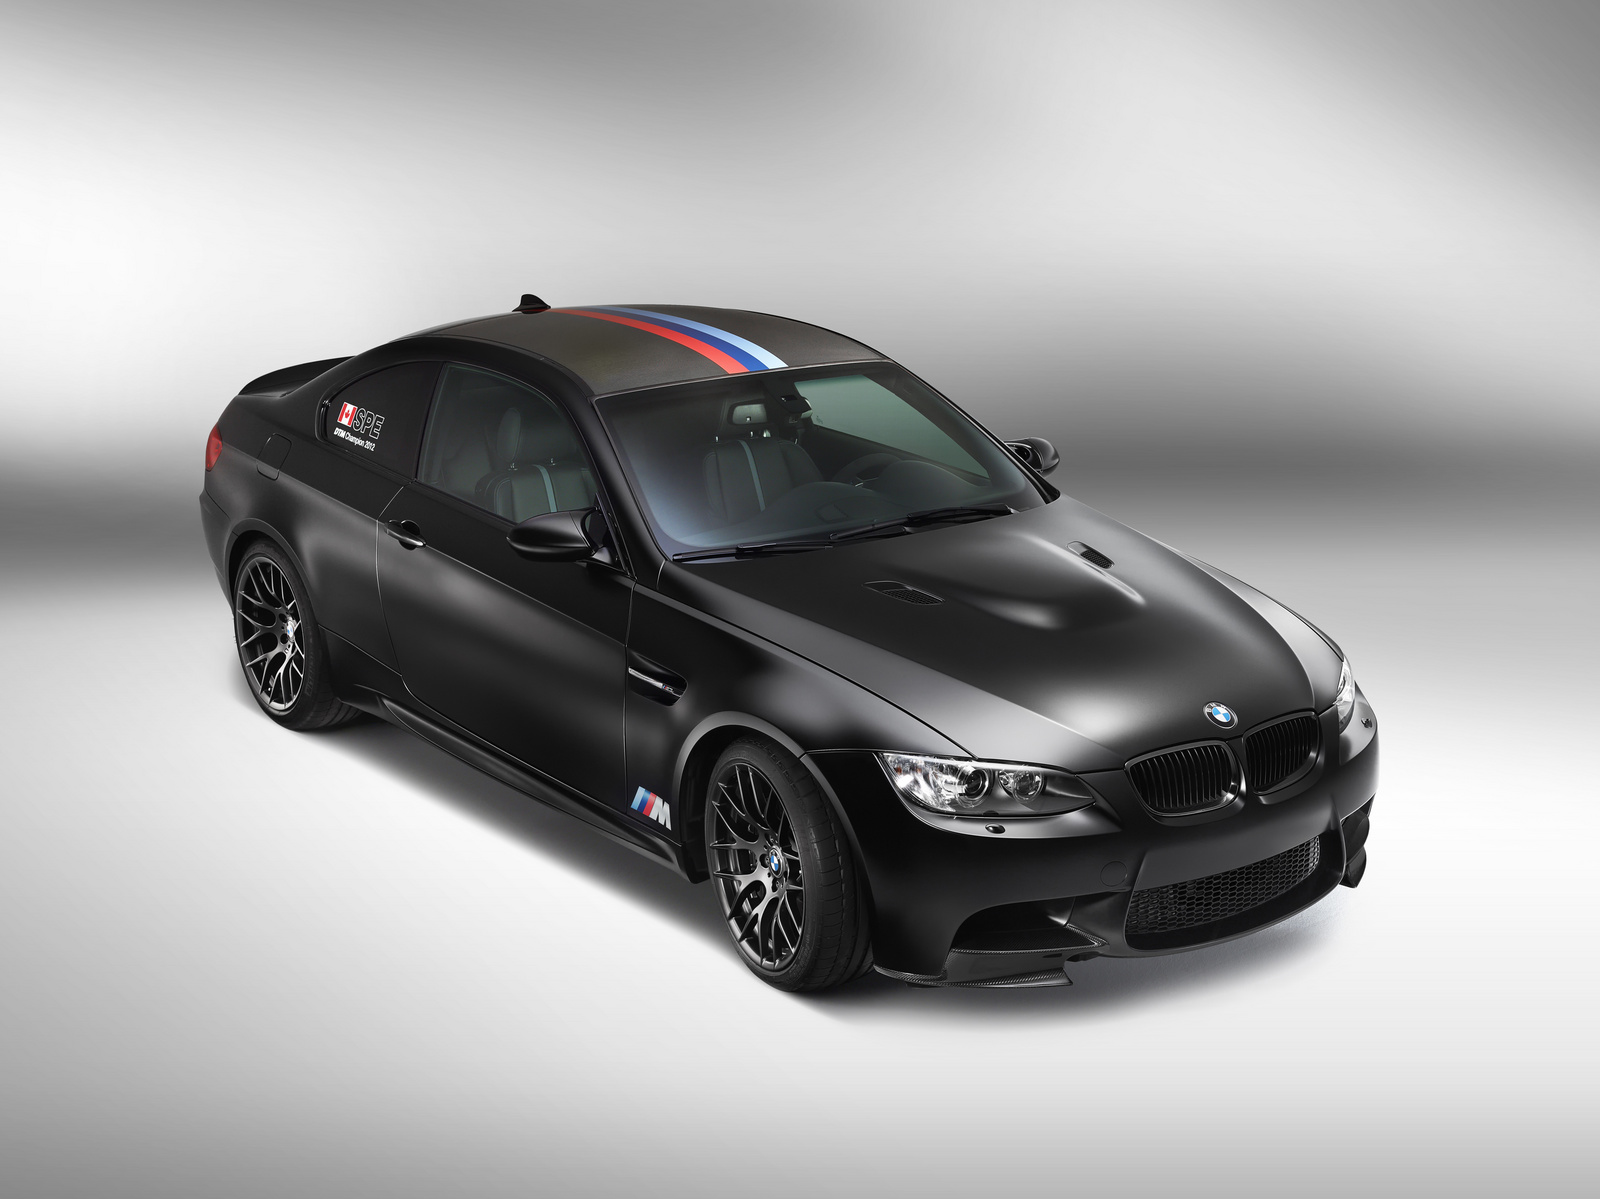 Picture of 2013 BMW M3